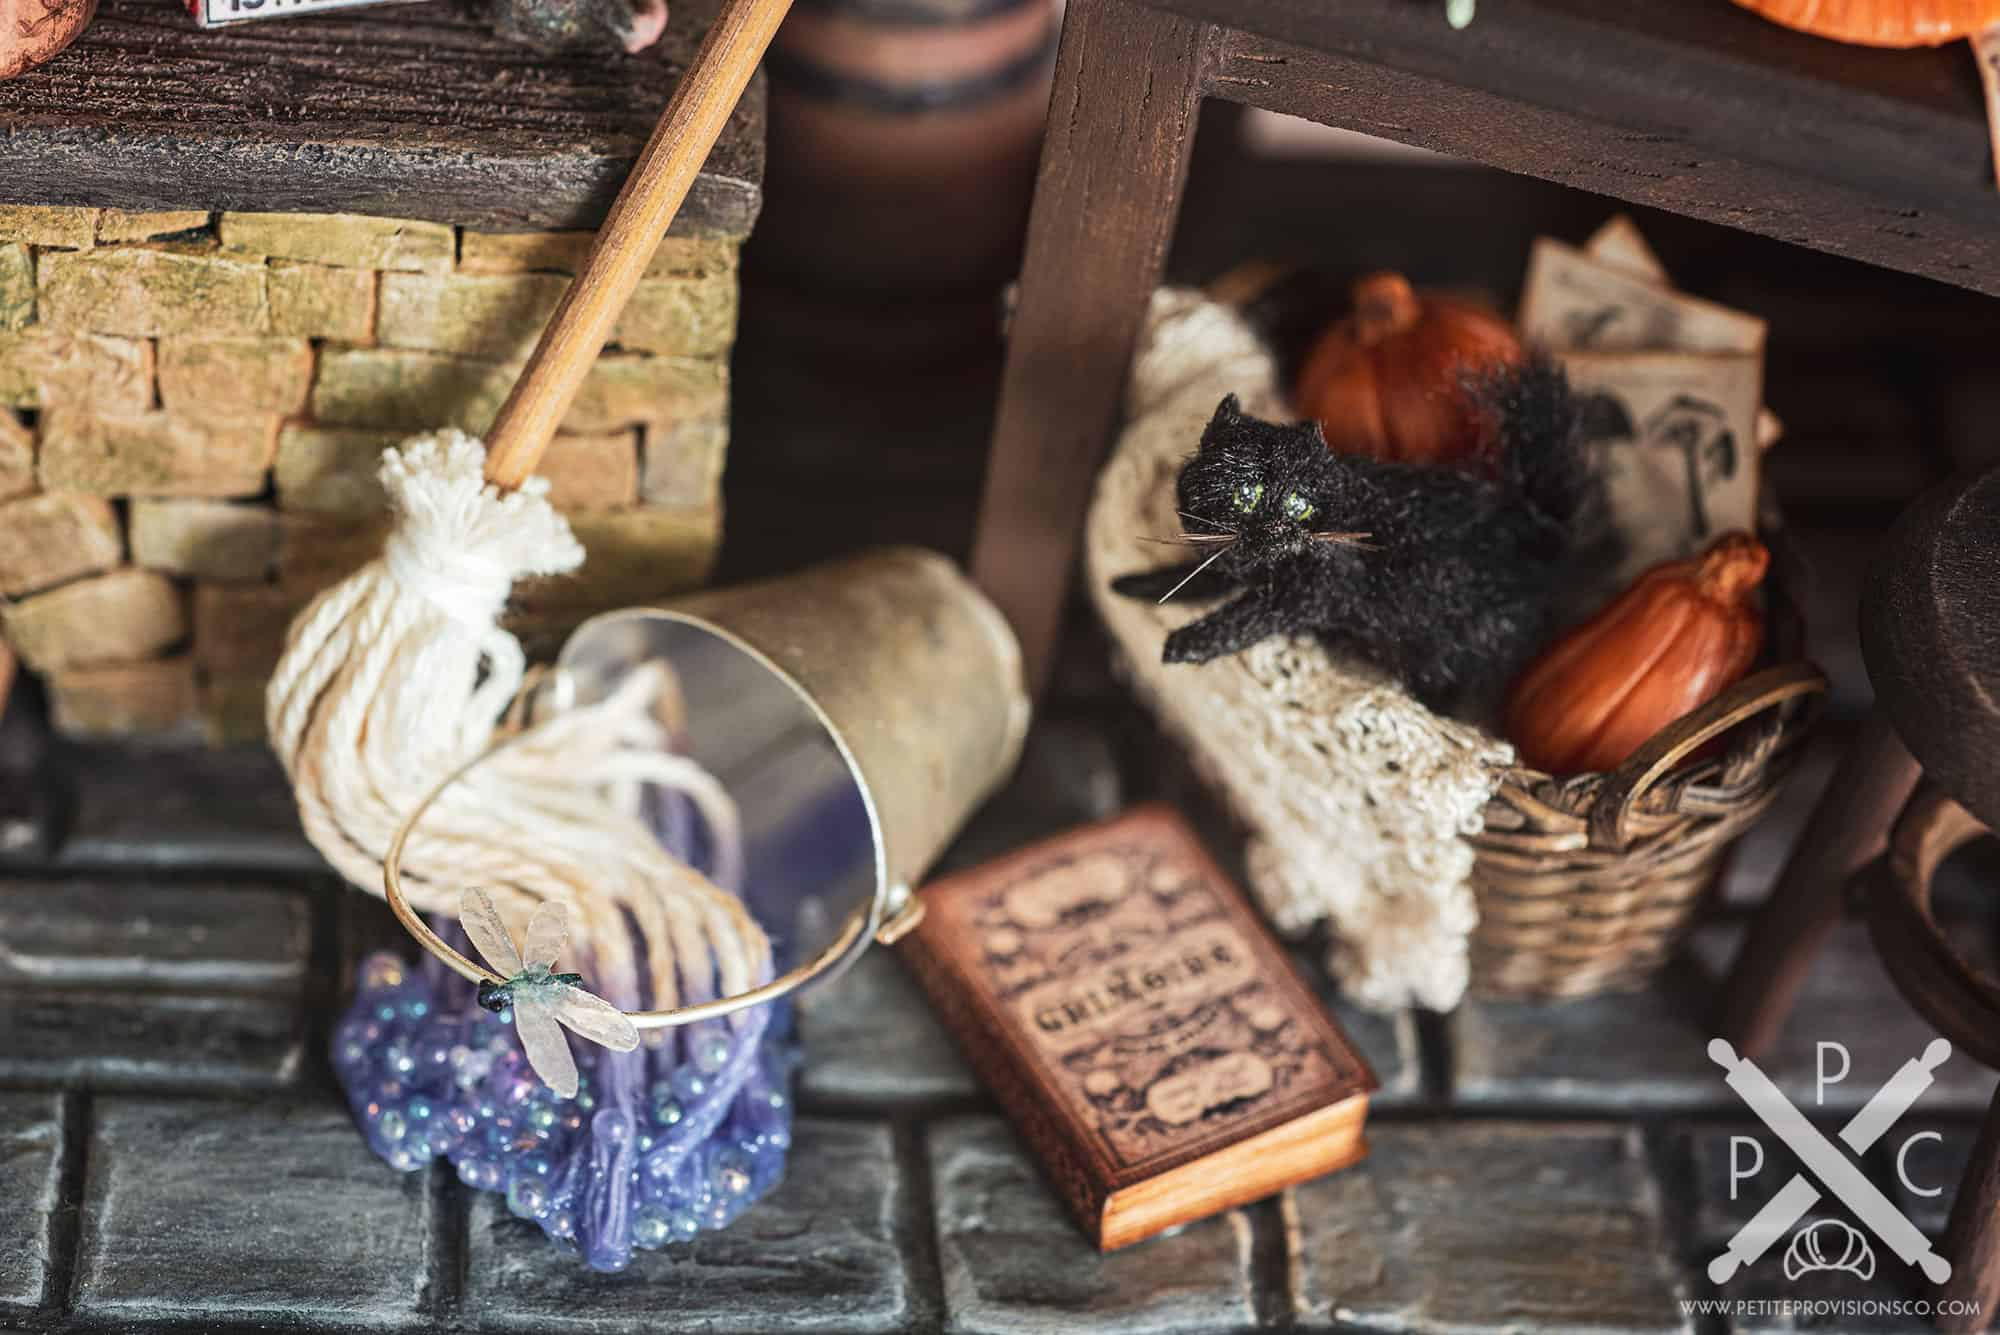 Magical Mop and Black Cat in Witch's Kitchen Themed Roombox - Halloween at the Hag's Hearth - HBSMiniatures Halloween Challenge 2020